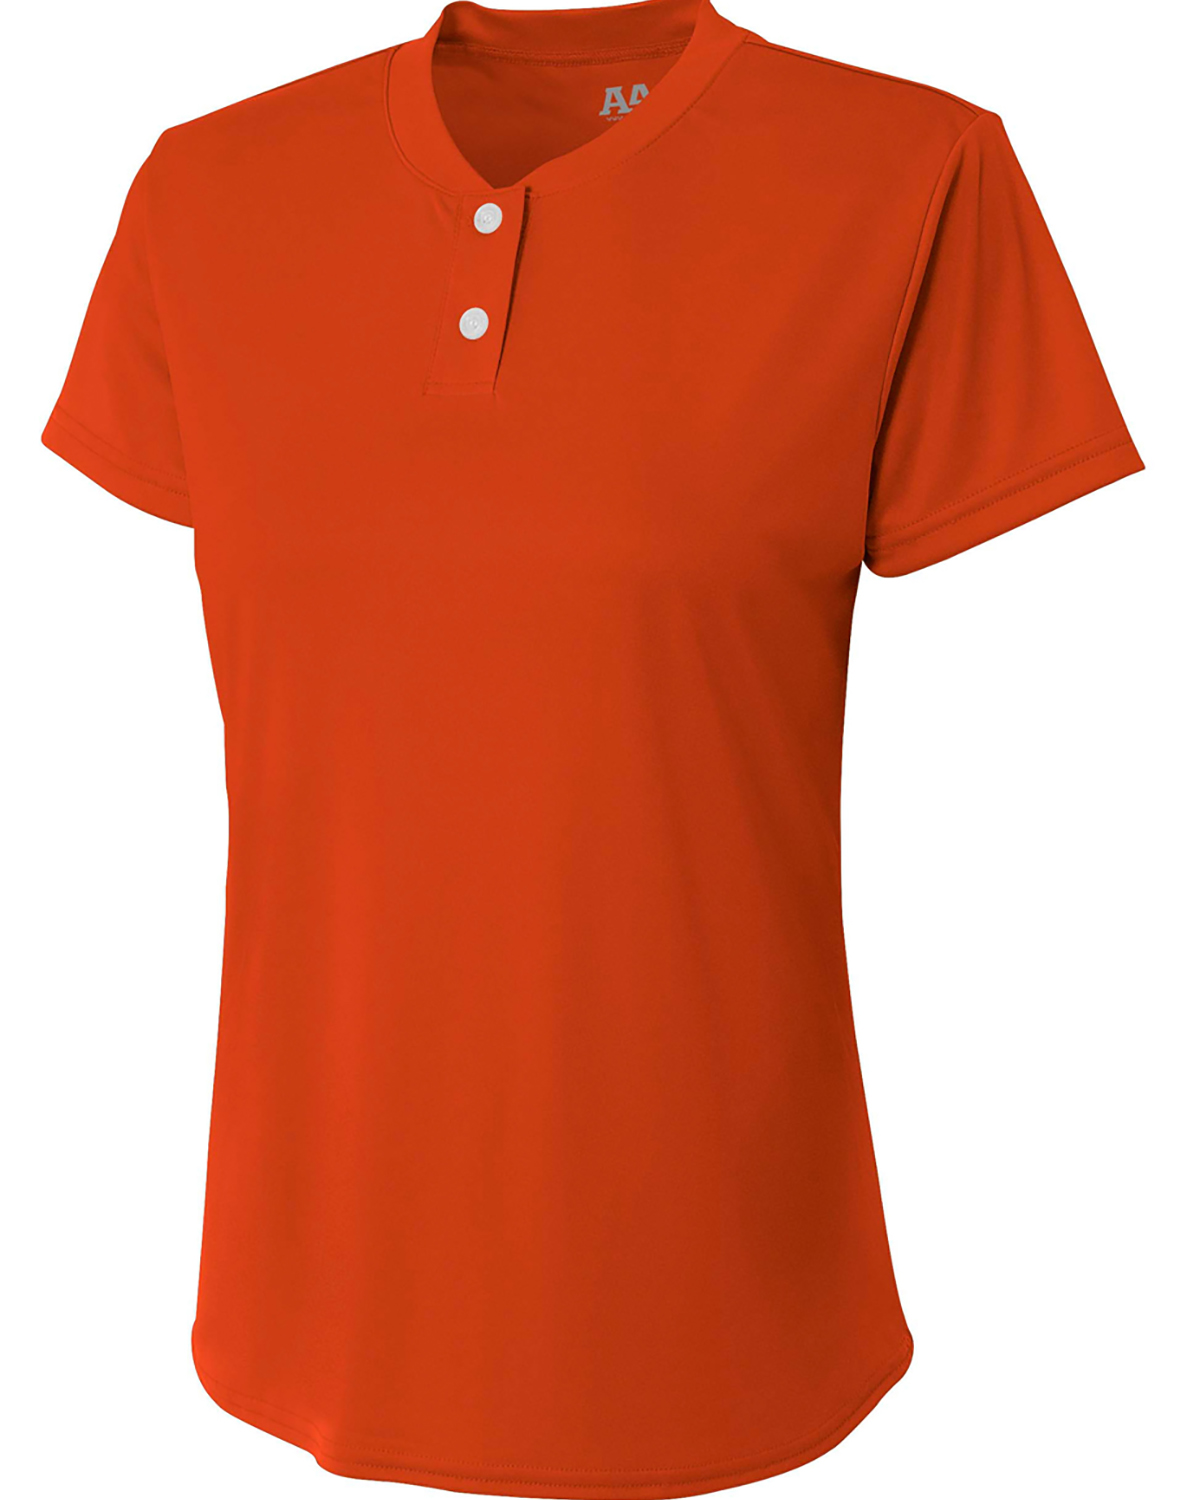 A4 Drop Ship NW3143 - Ladies' Tek 2-Button Henley Shirt